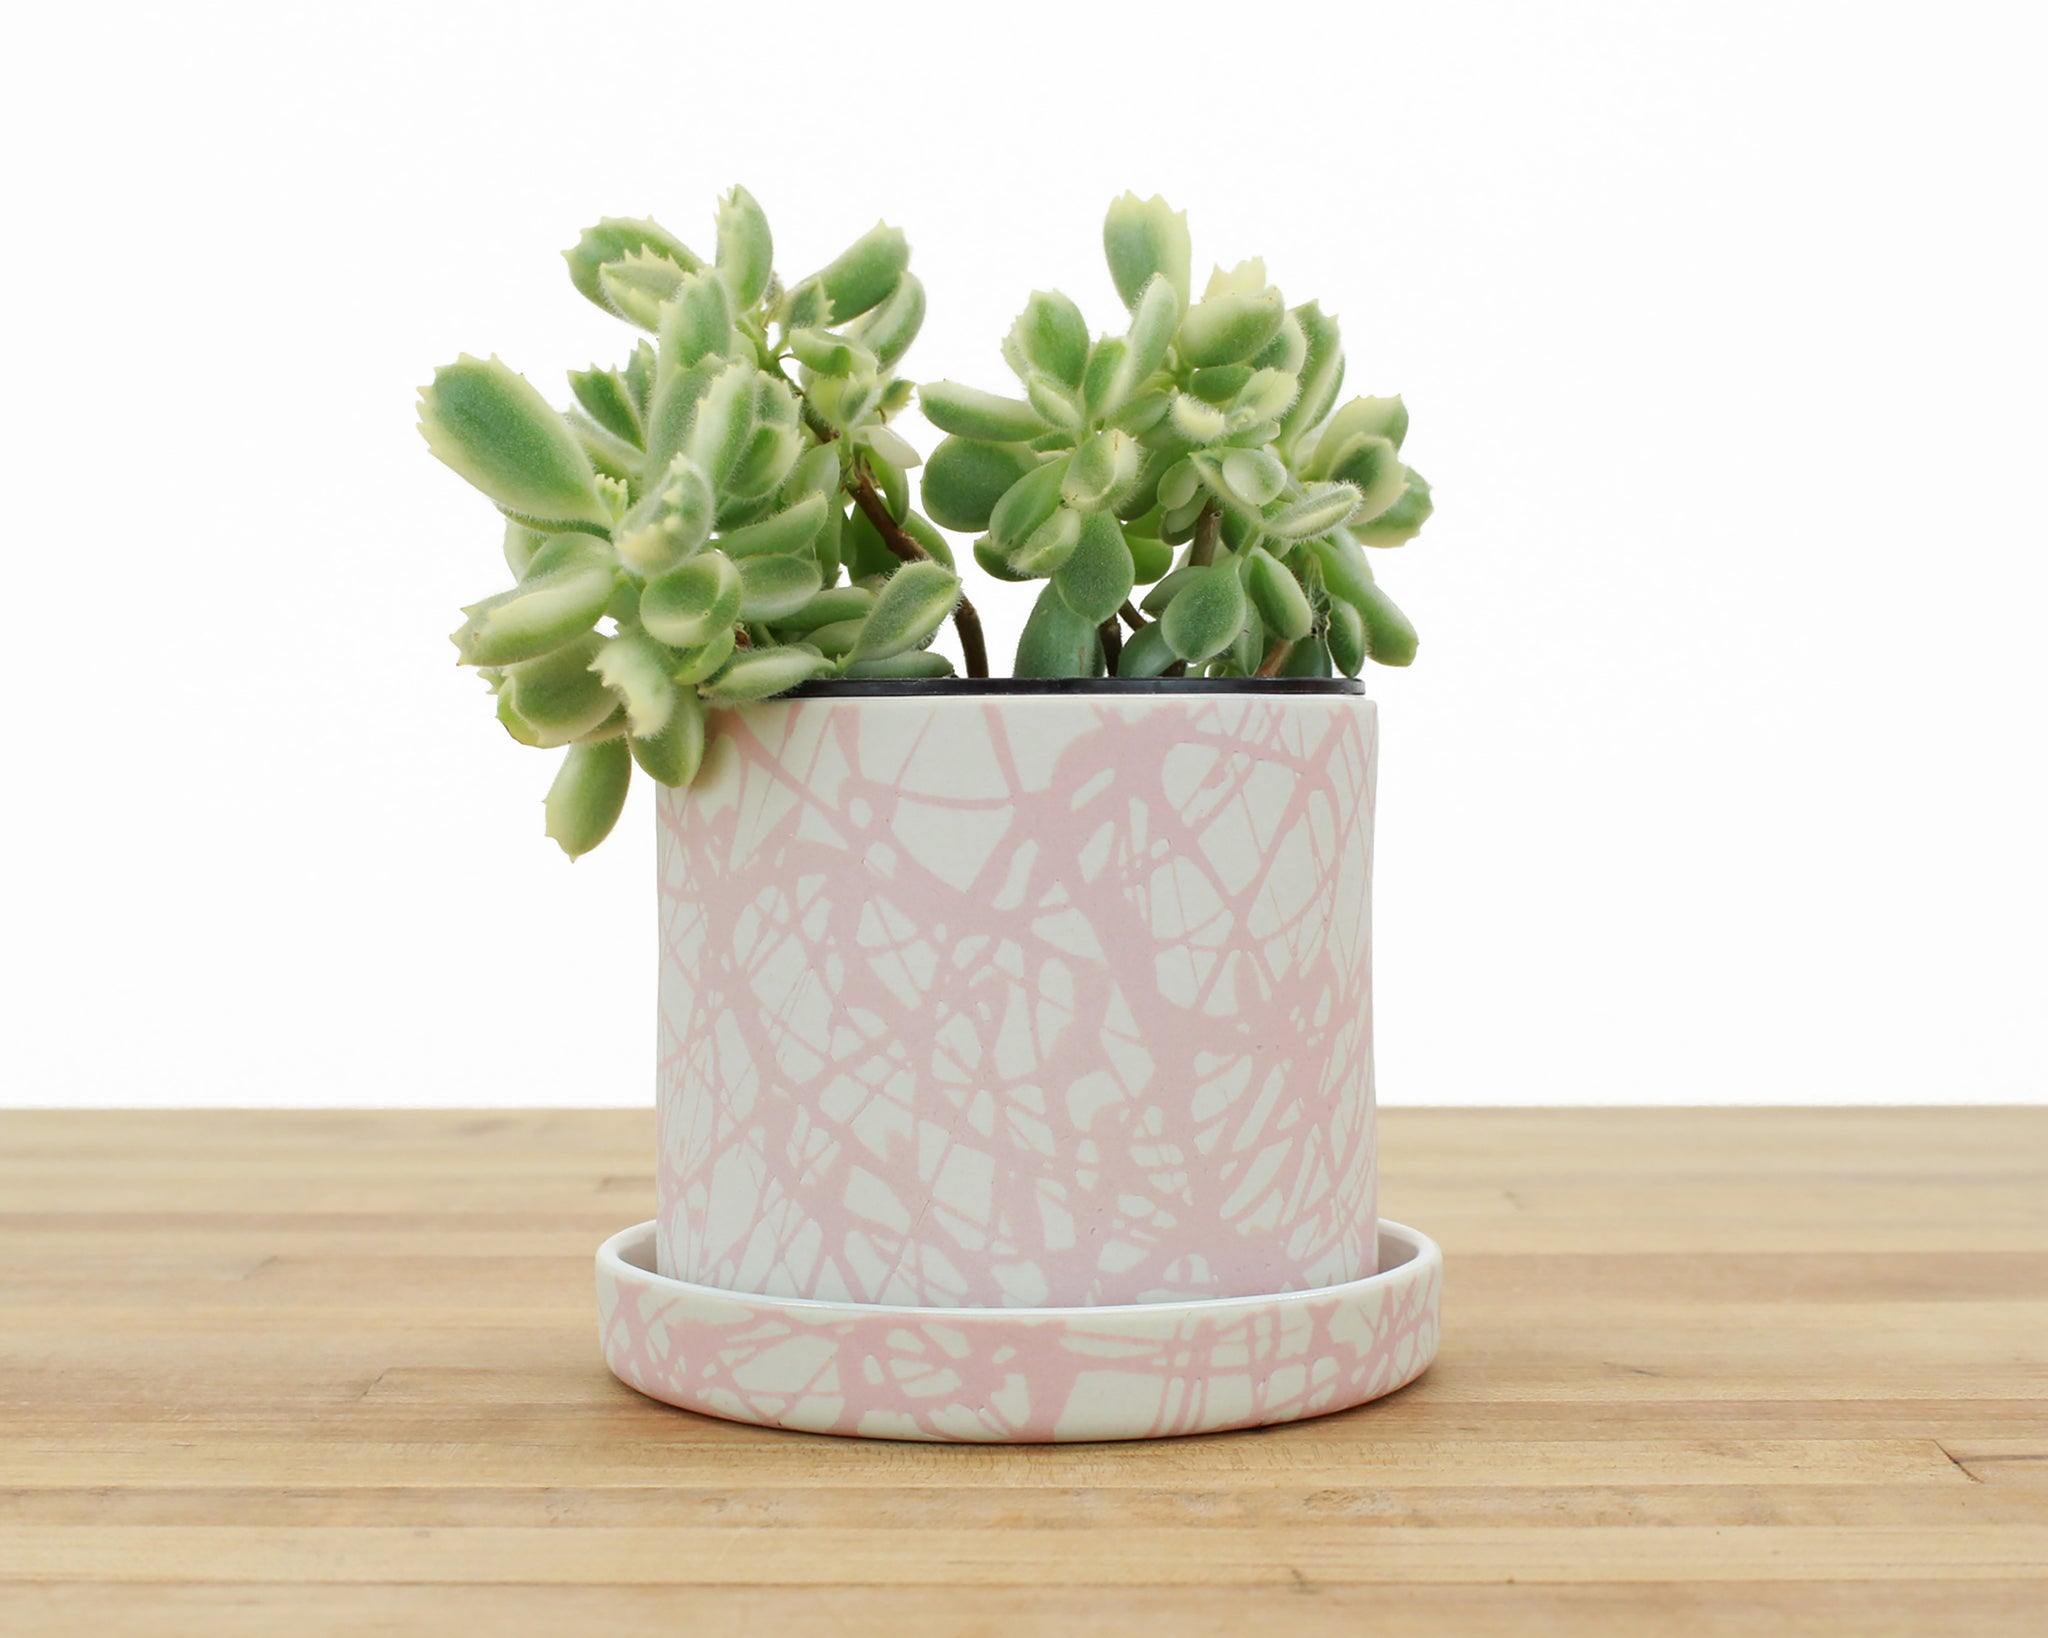 4 inch Cylinder Planter with or without Saucer - Blush Splatter